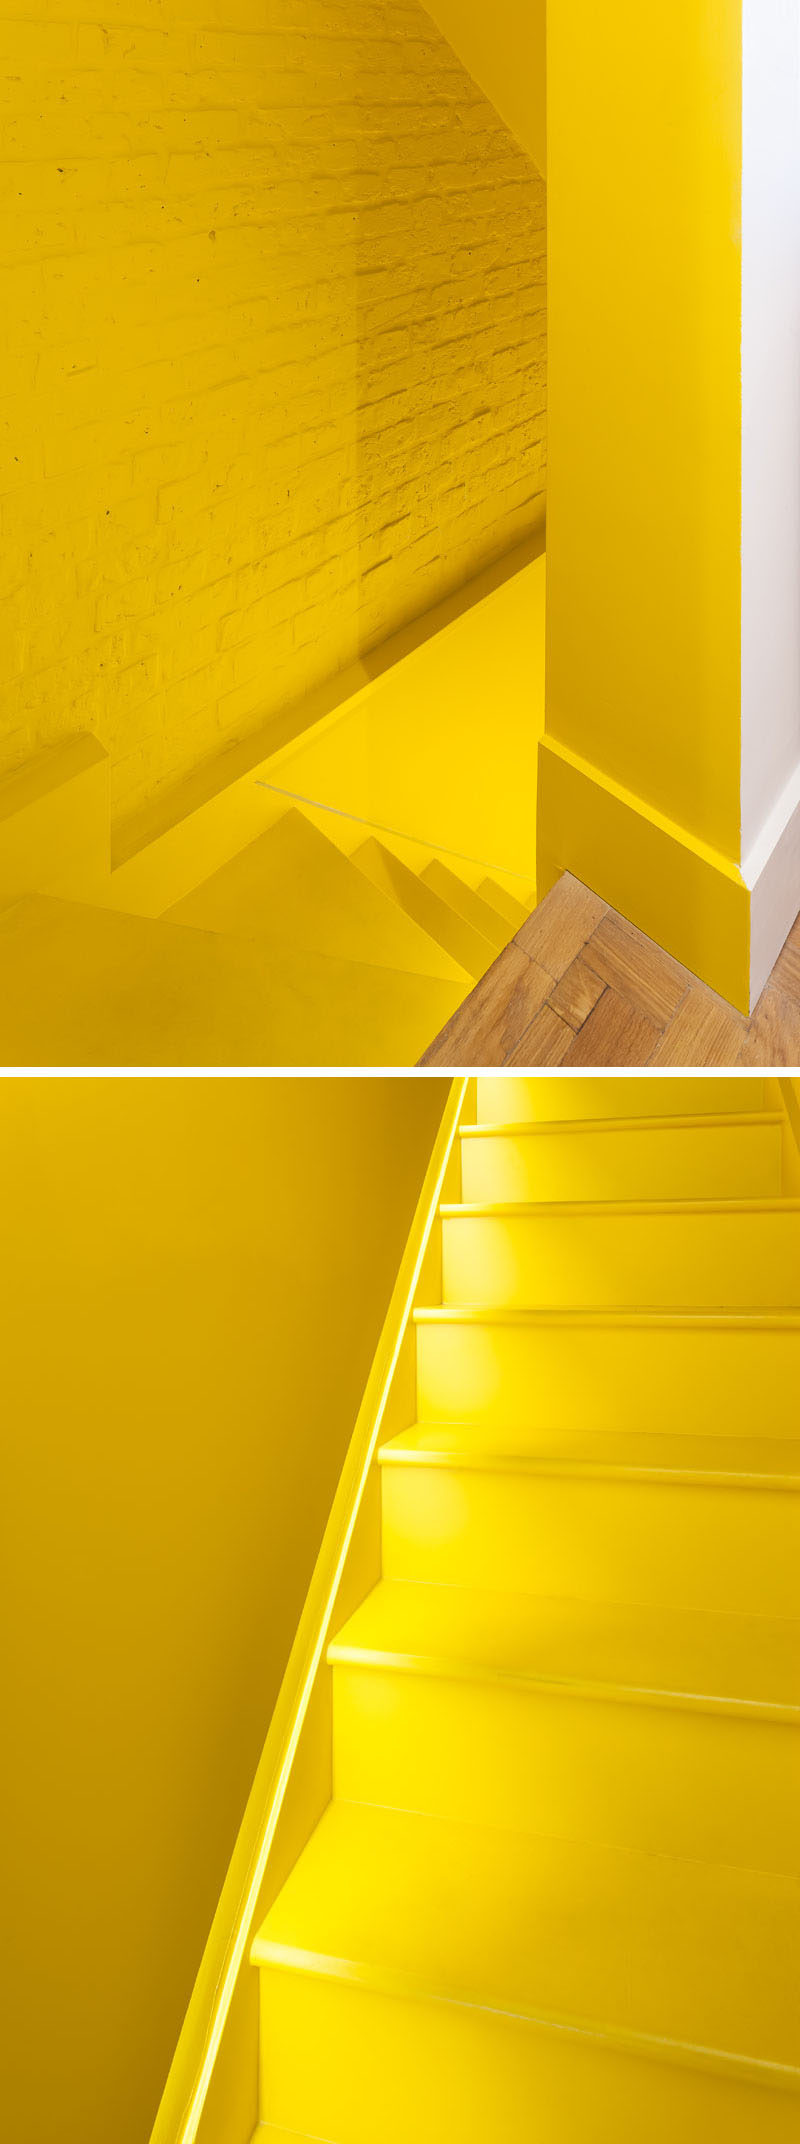 These modern bright yellow stairs have a simple strip of light that runs alongside them to make it easier to see when it's dark. #YellowStairs #Stairs #ModernStairs